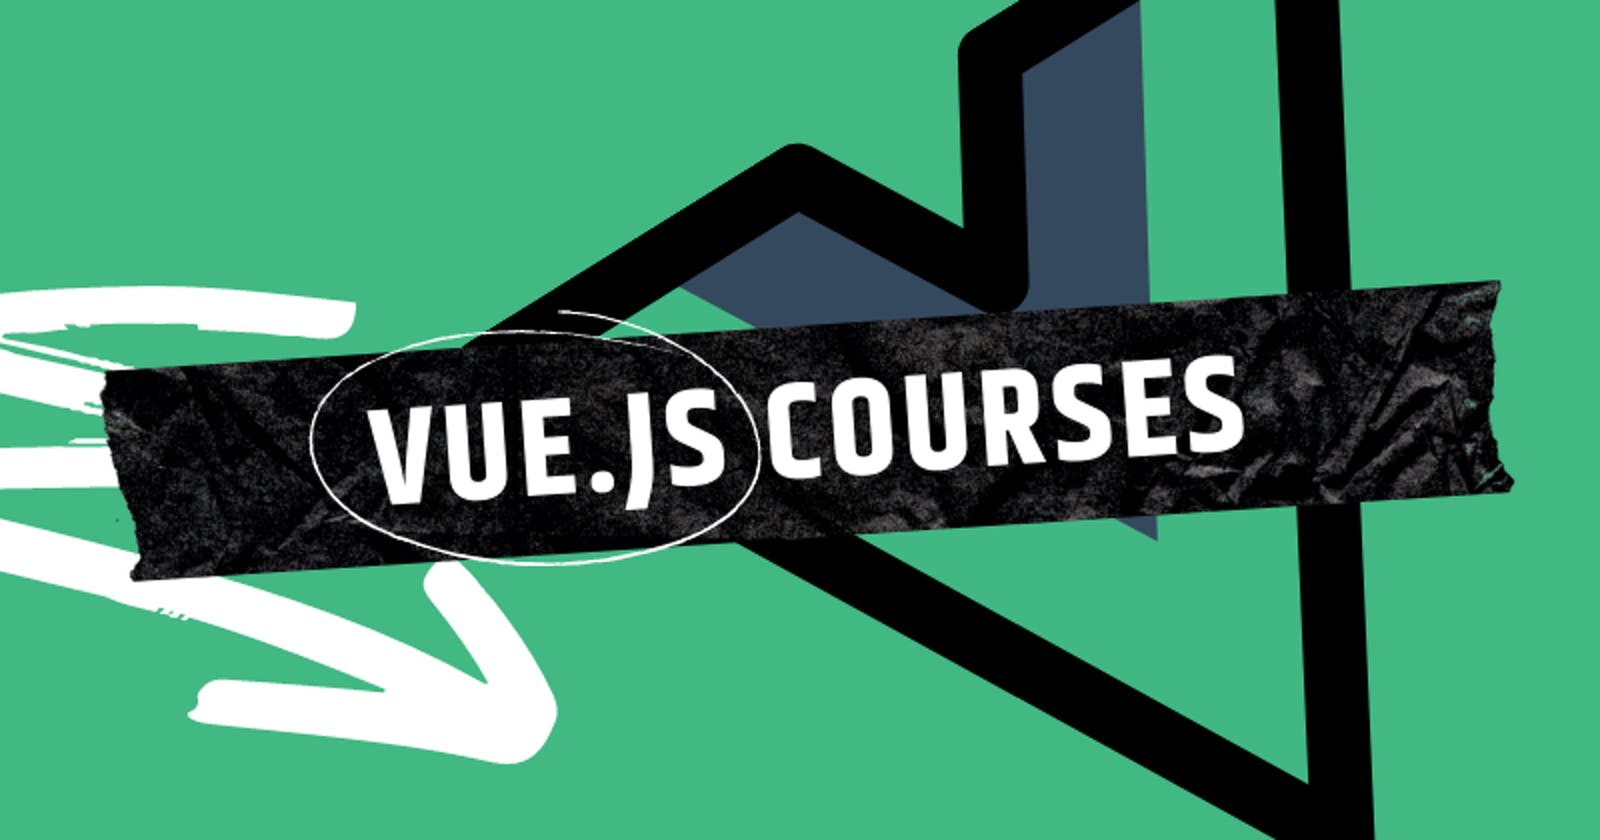 6 Resources To Learn Vue.js As A Beginner